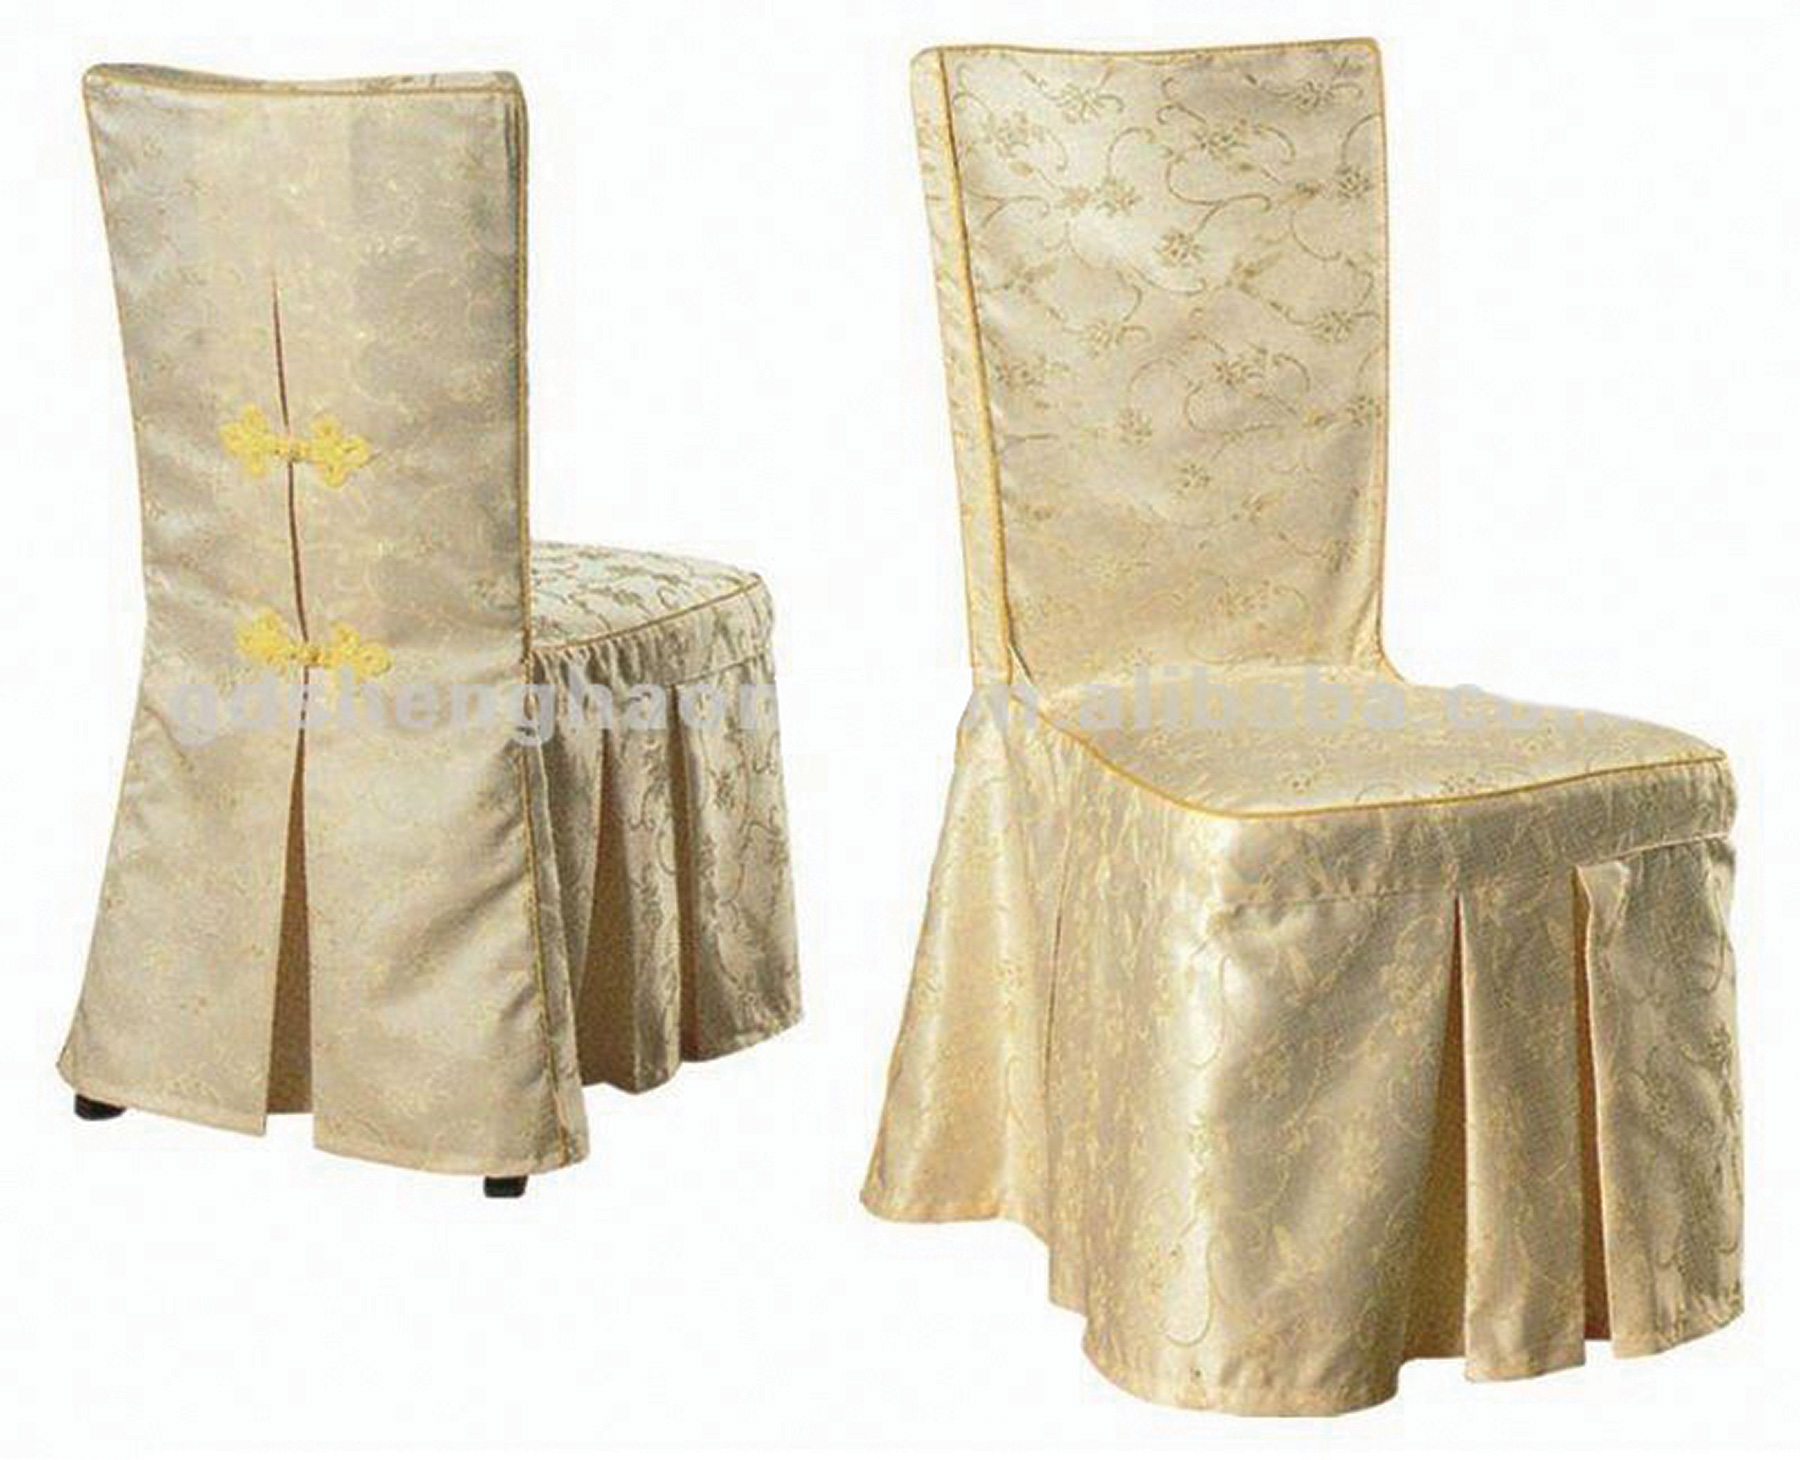 chair cover rental cost bedroom green polyester ivory with tie detail at